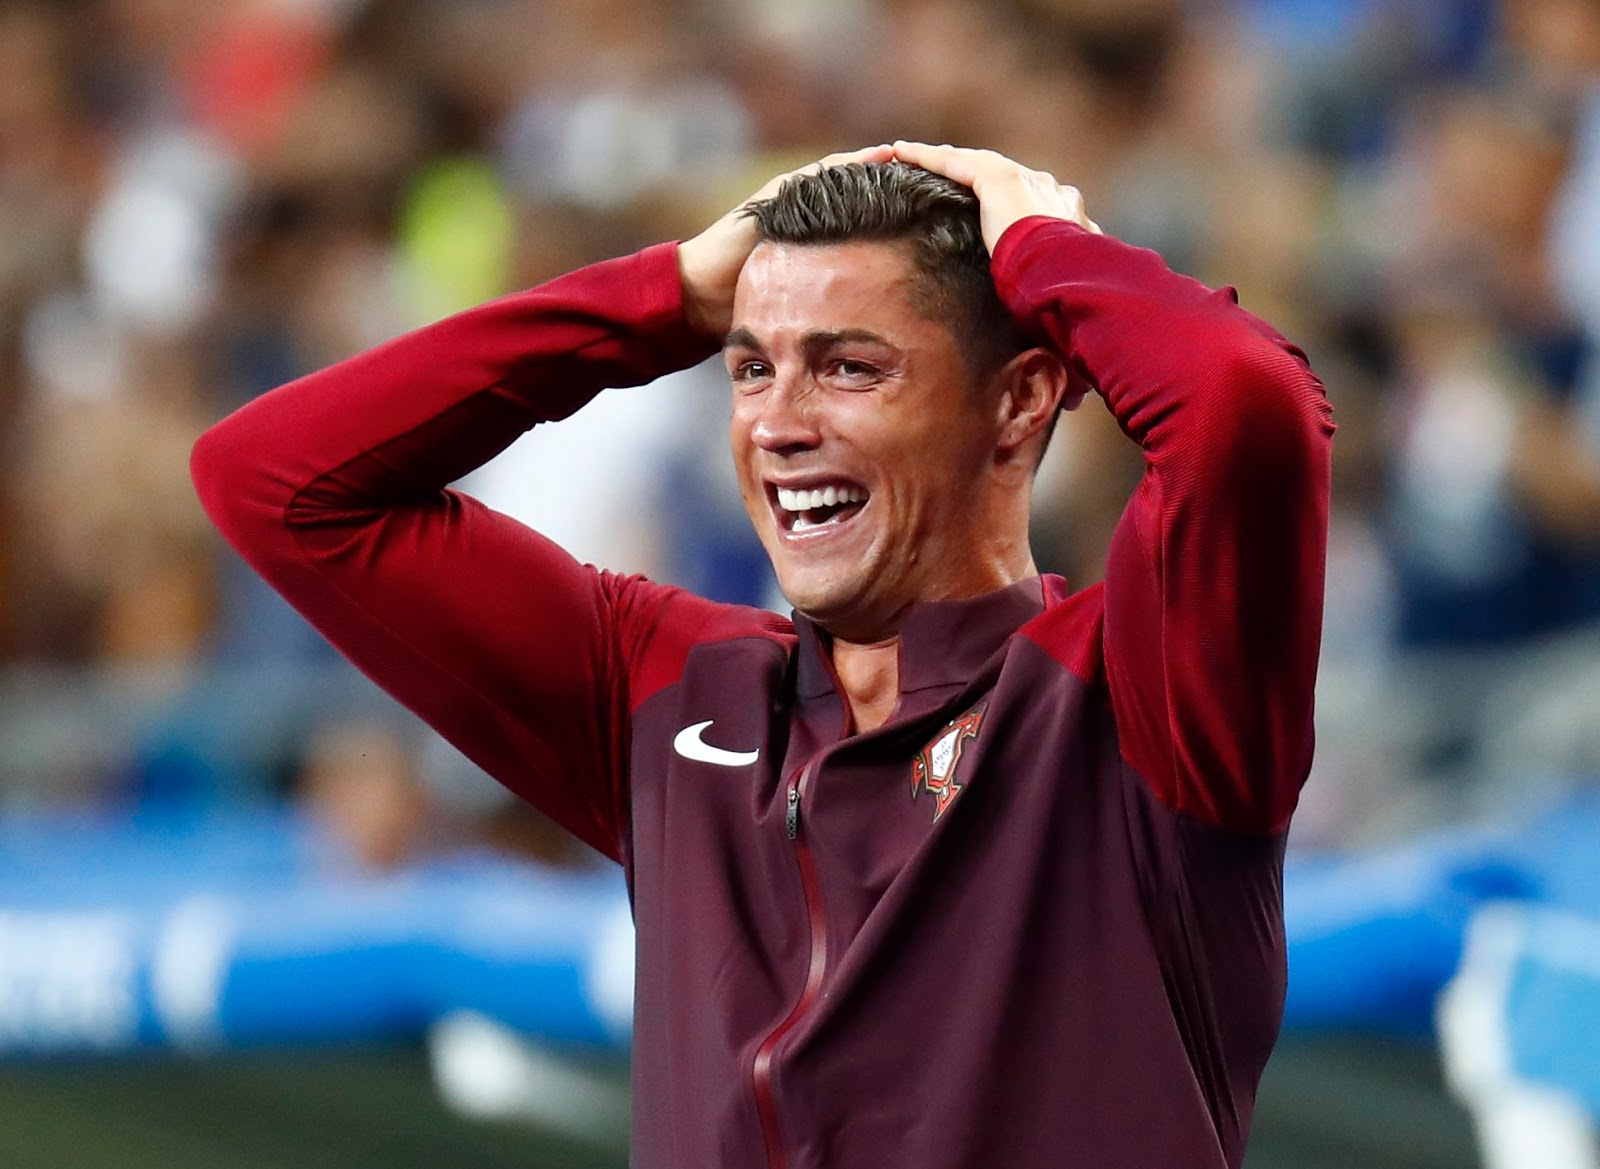 Love Him Or Hate Him, Cristiano Ronaldo Became the Leader His Team Needed at Euro 2016